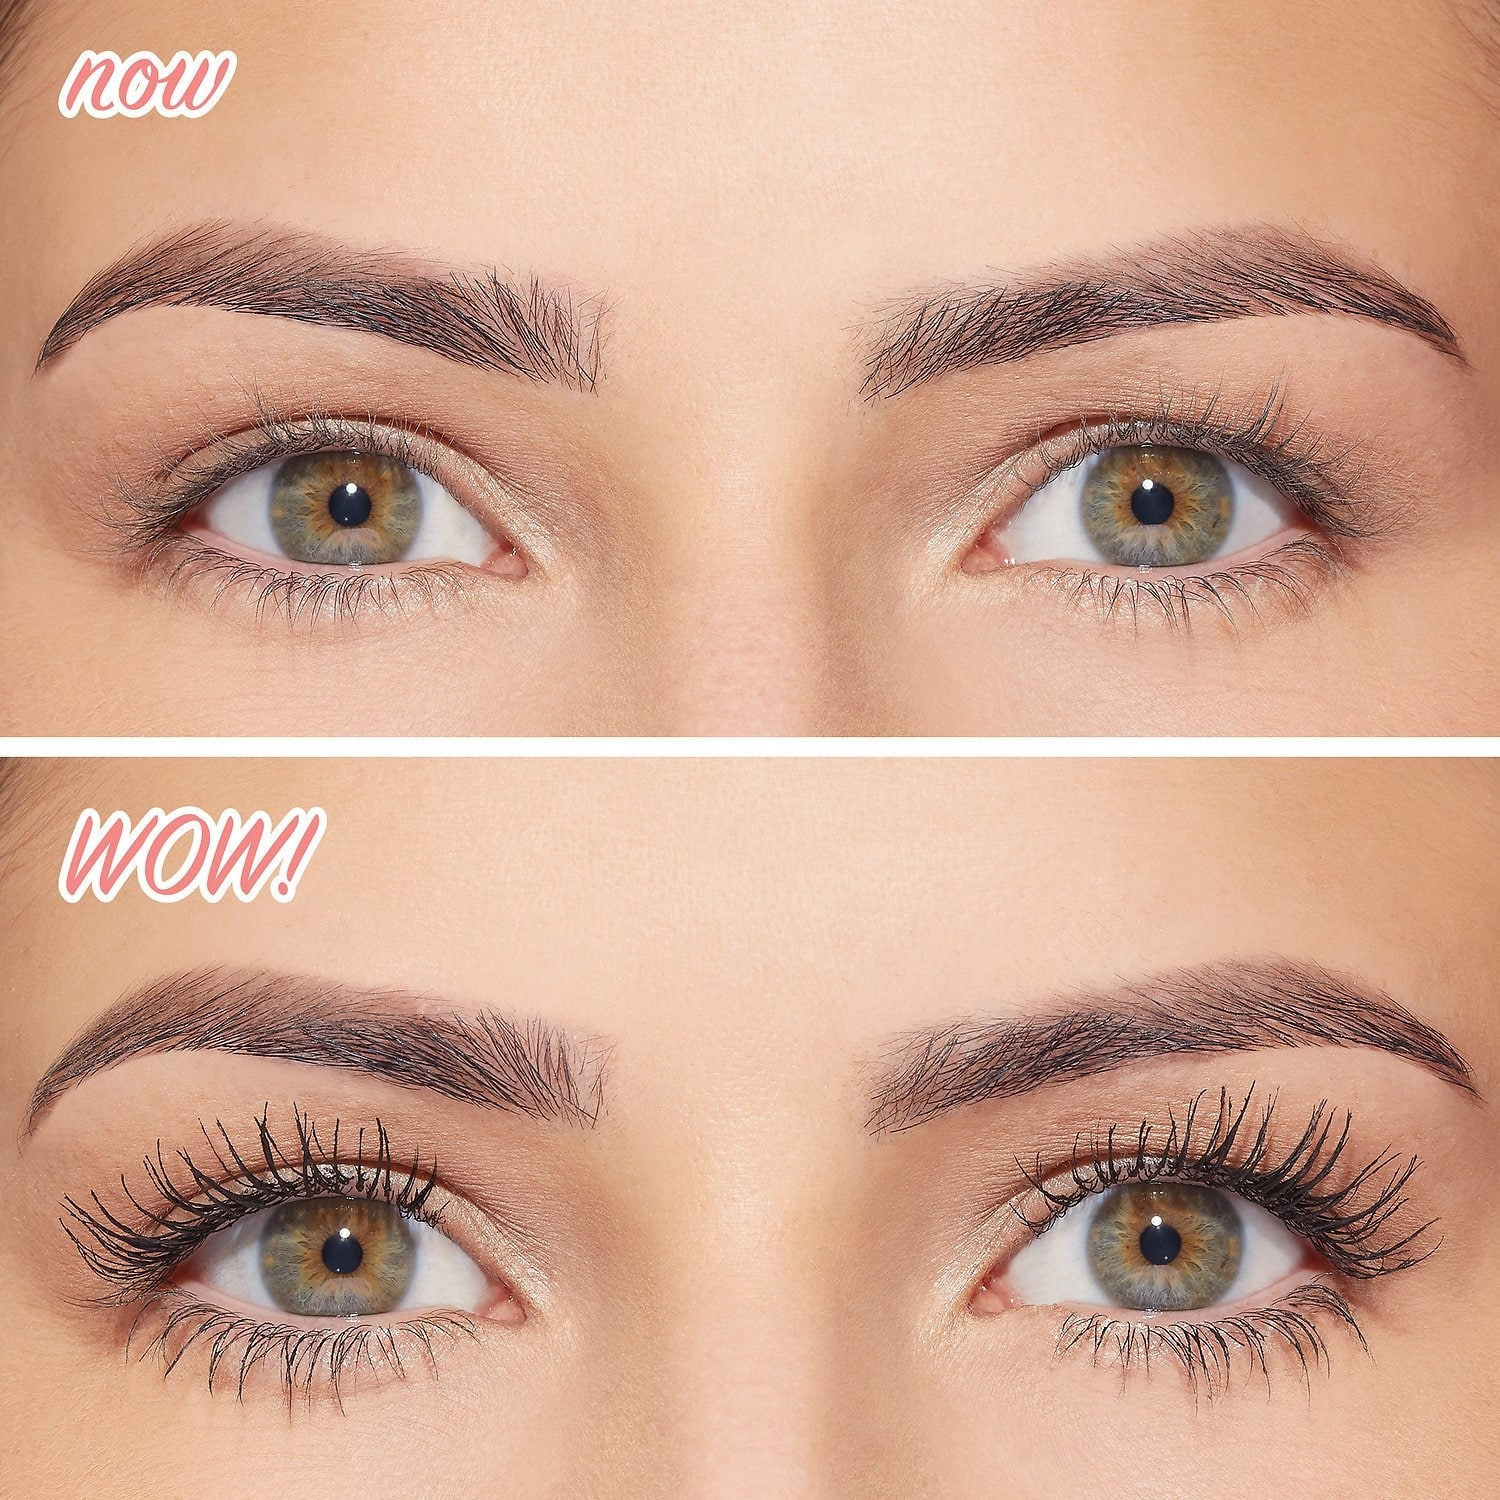 A before/after of a model's lashes looking much longer and darker with the mascara on